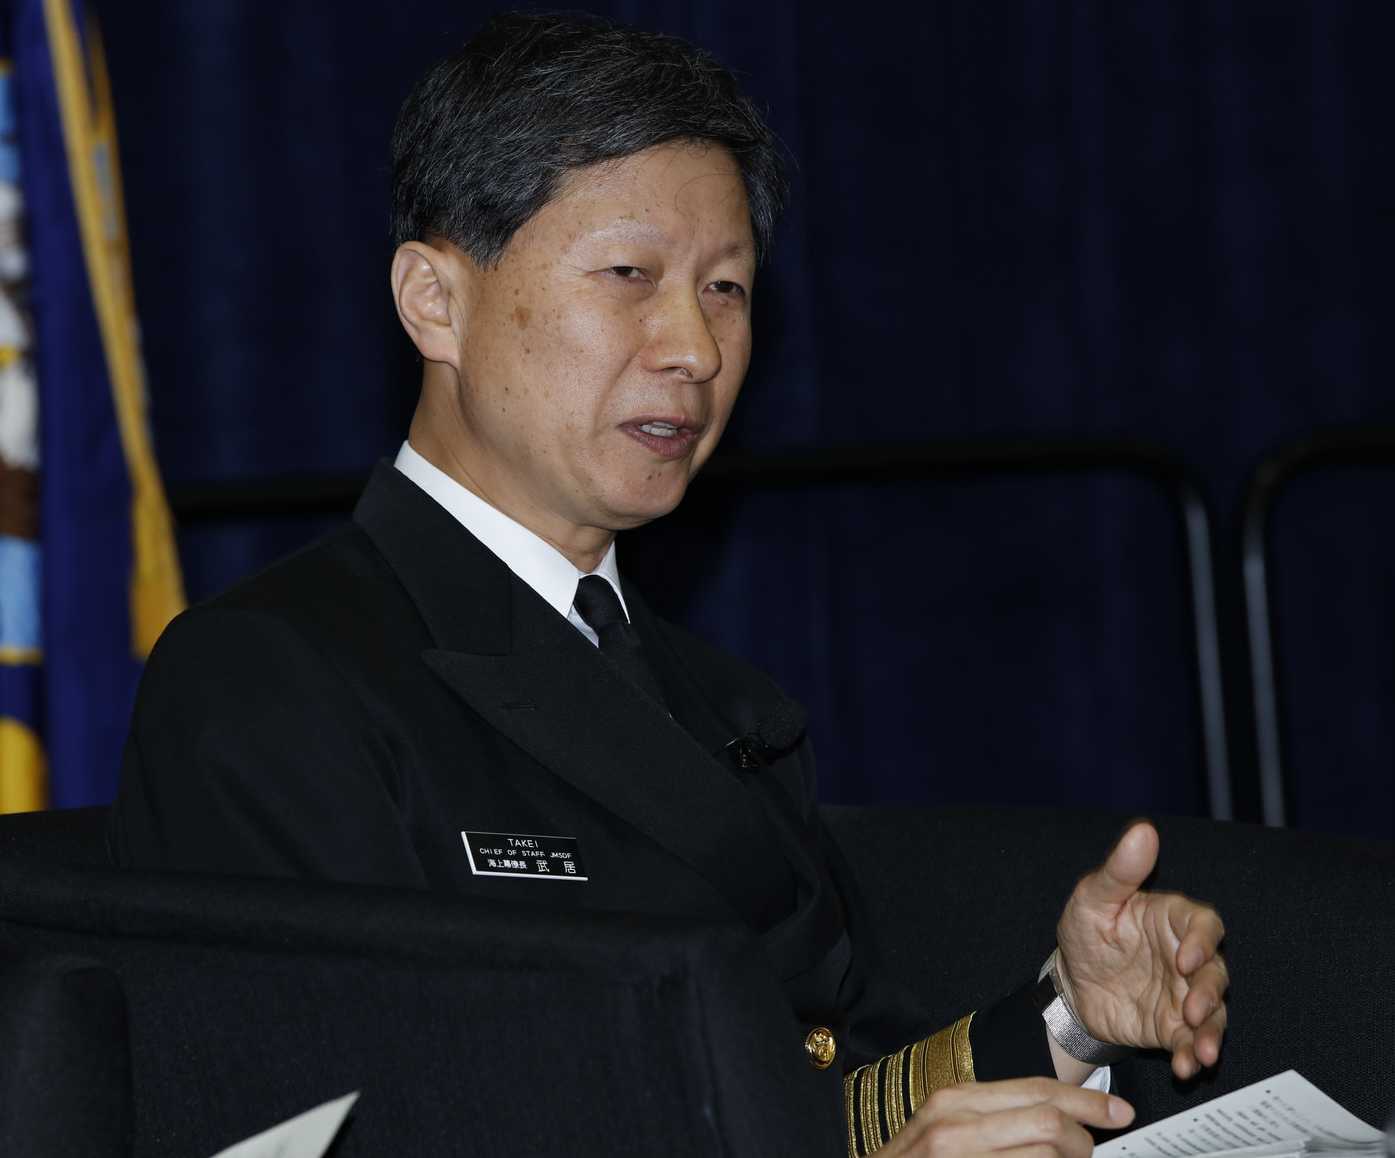 Adm. Tomohisa Takei, chief of staff of the Japan Maritime Self-Defense Force, on Feb. 18, 2016. US Naval Institute Photo